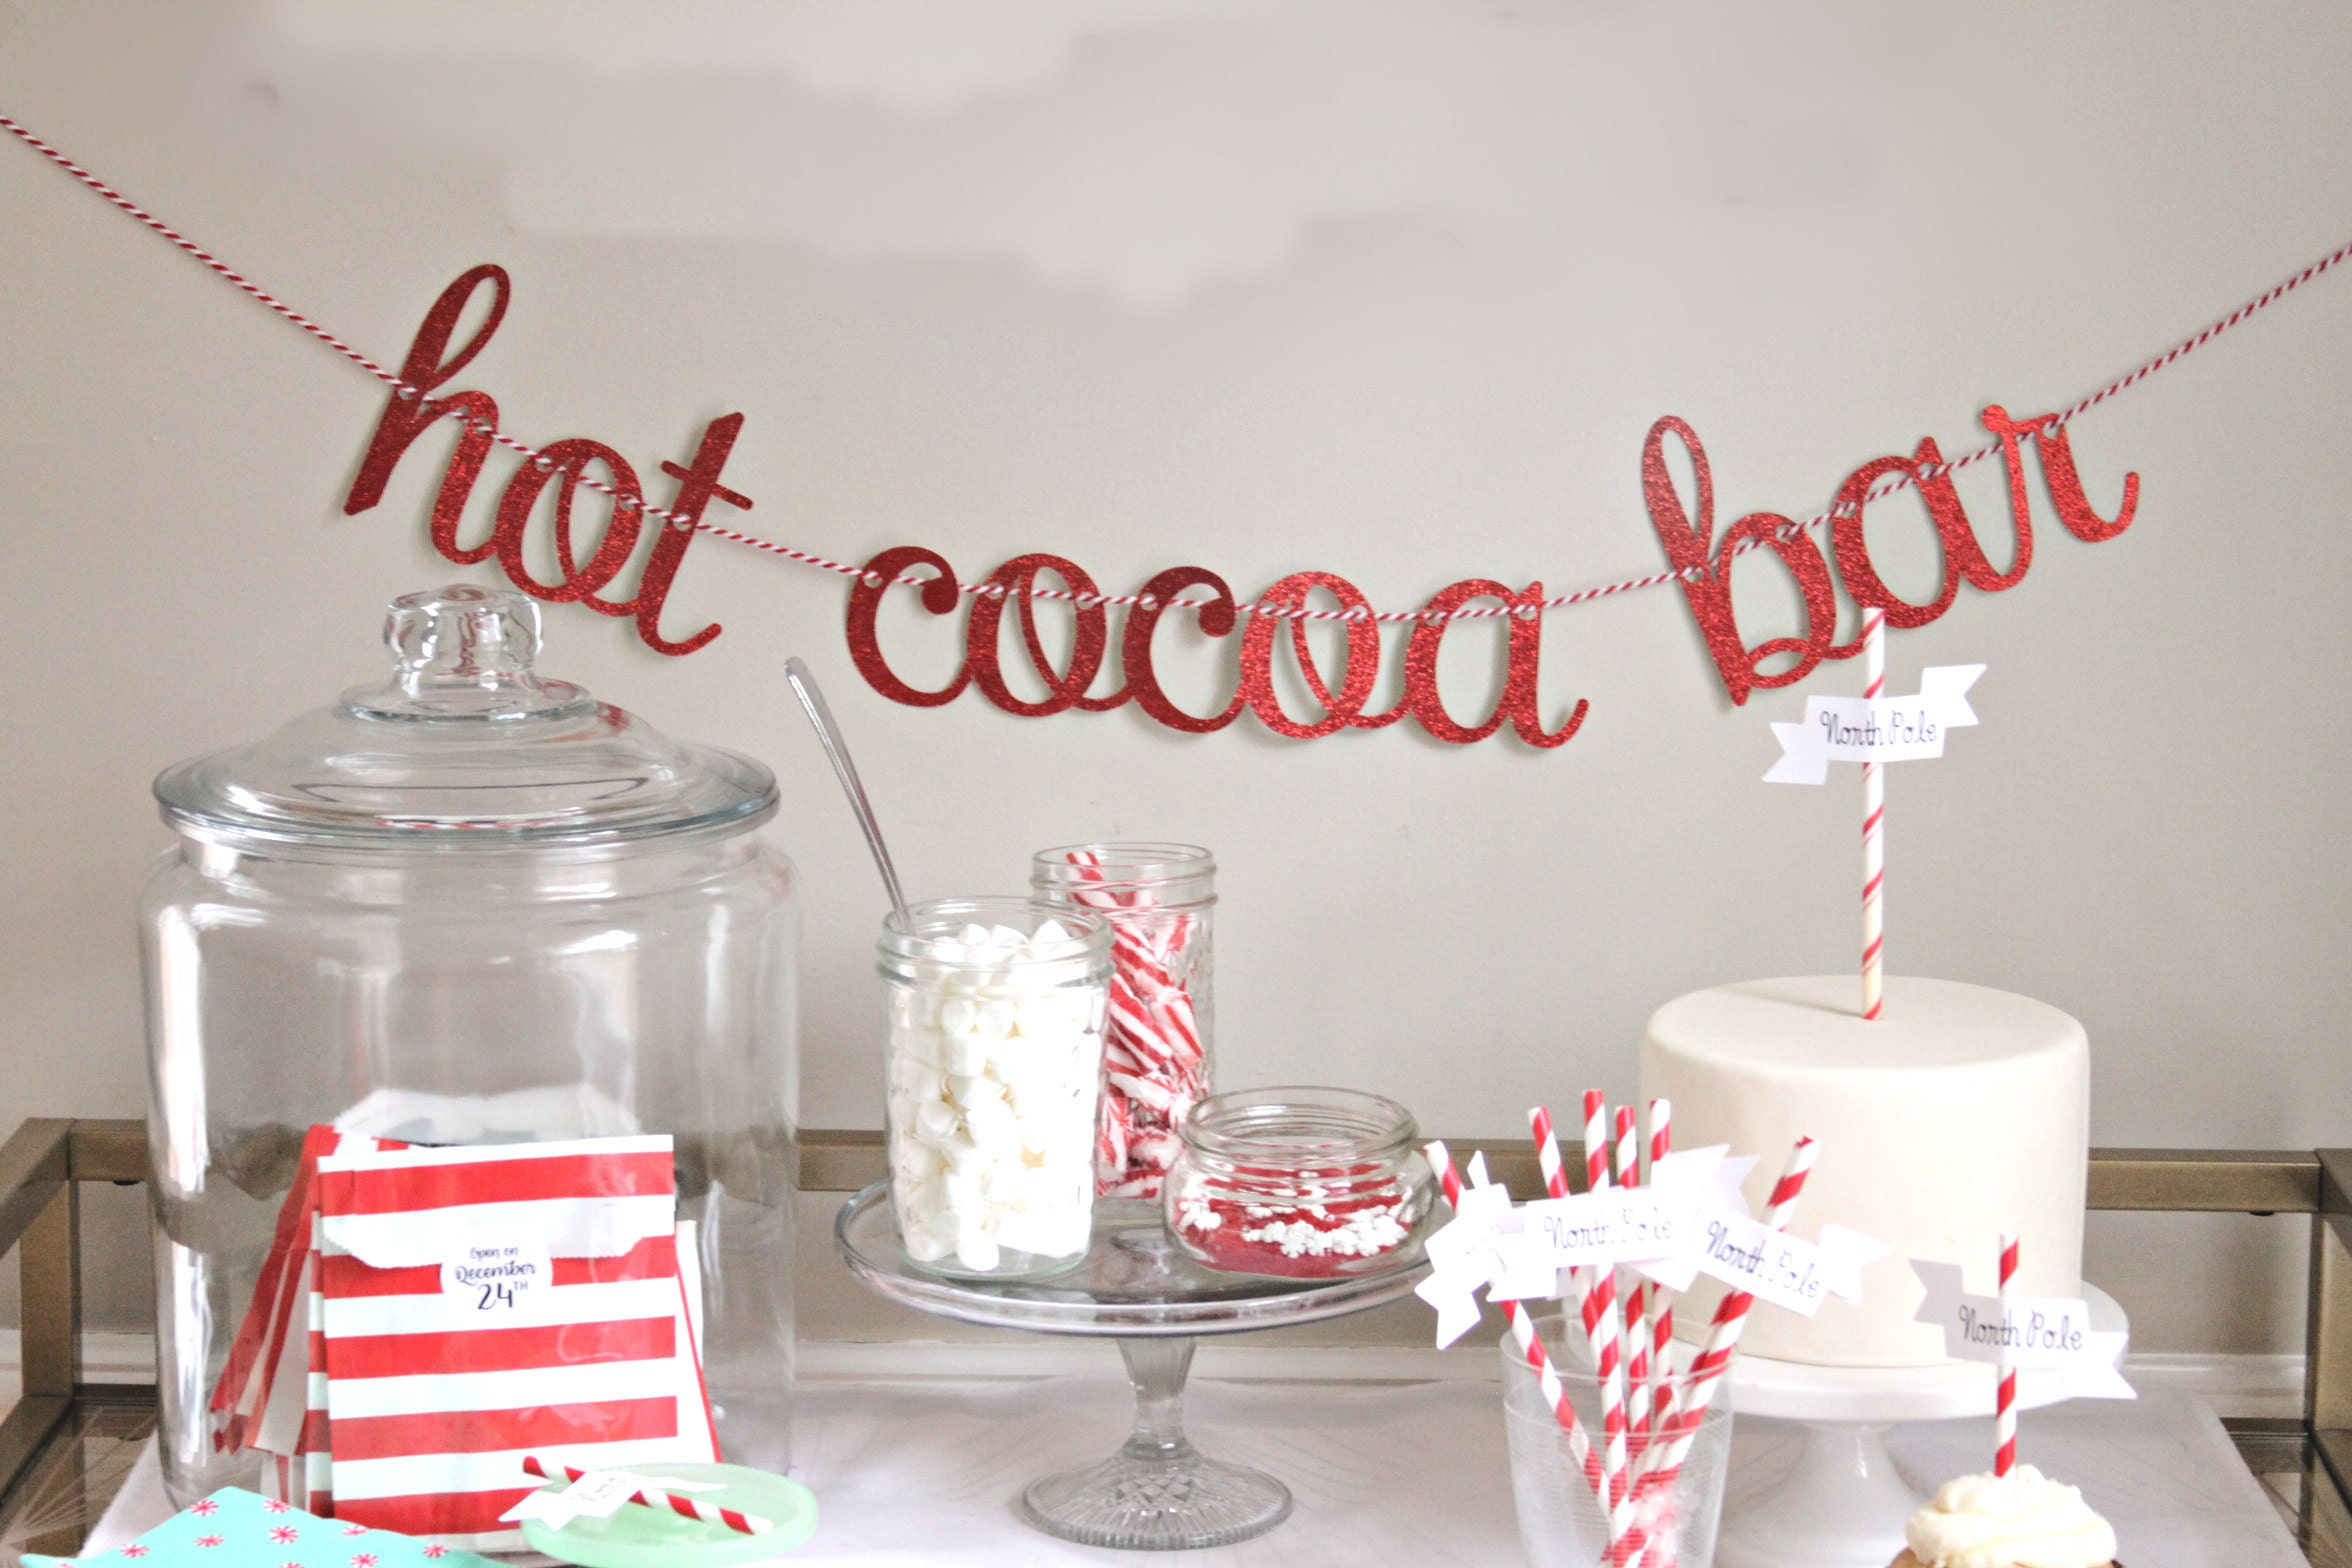 Hot Chocolate Bar Banner by Enfete